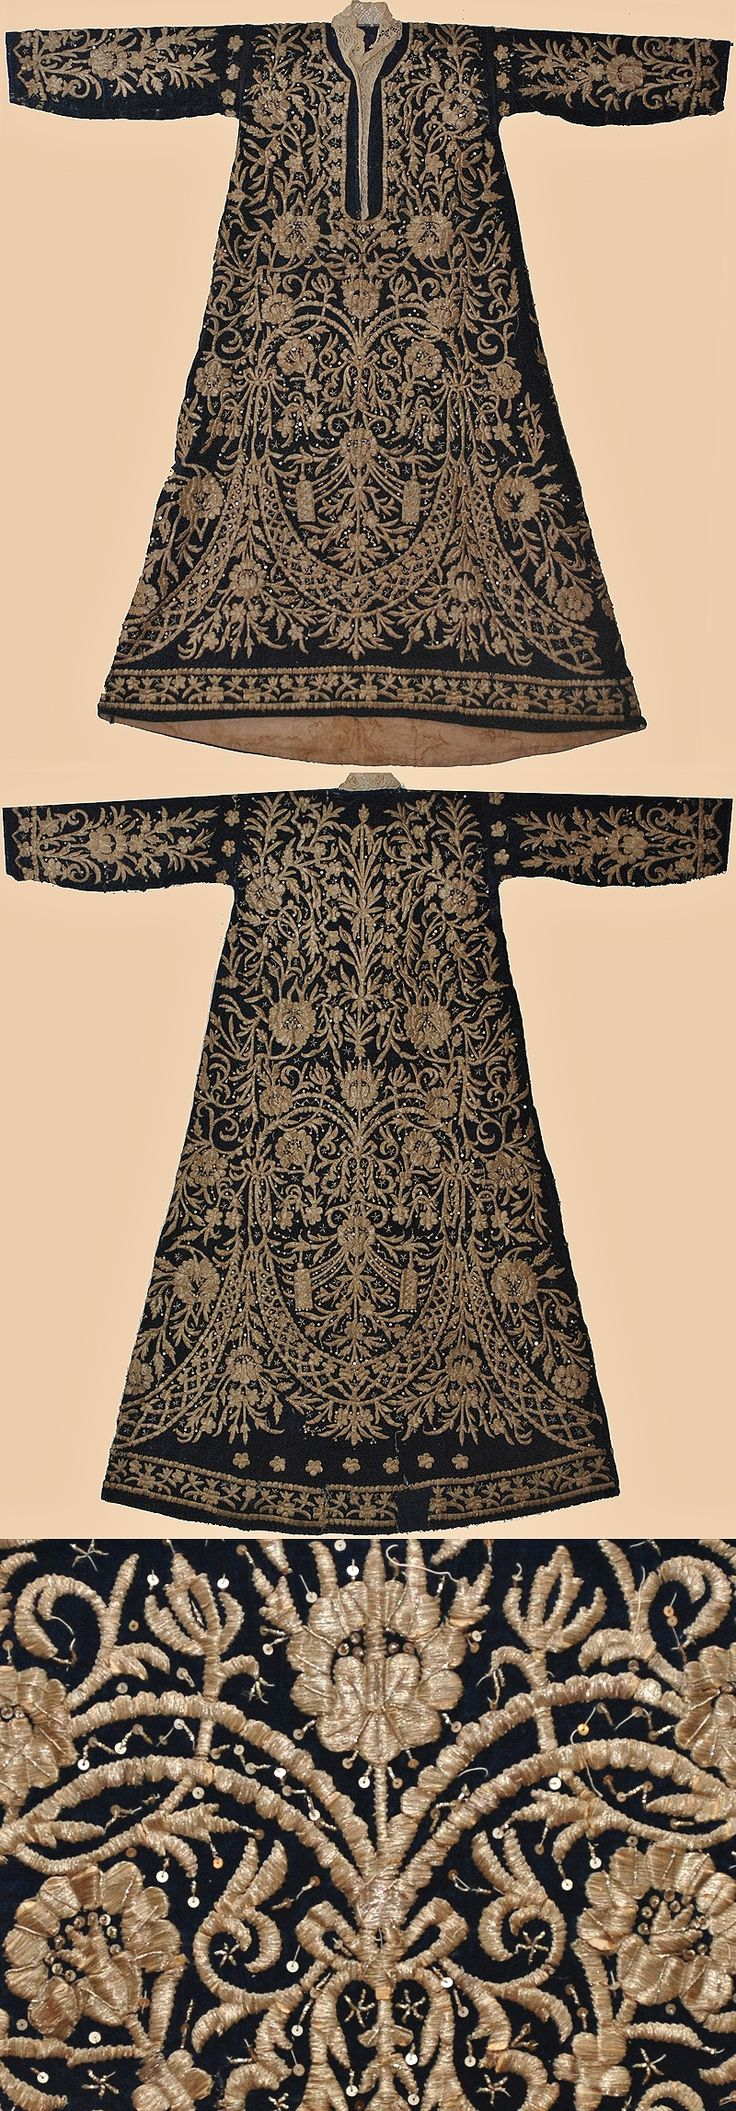 A woman's caftan ('bindalli entari'). Circa 1840.  Late-Ottoman upper class dress, possibly from Konya.  Velvet adorned with goldwork embroidery, minuscule golden spirals and metallic sequins.